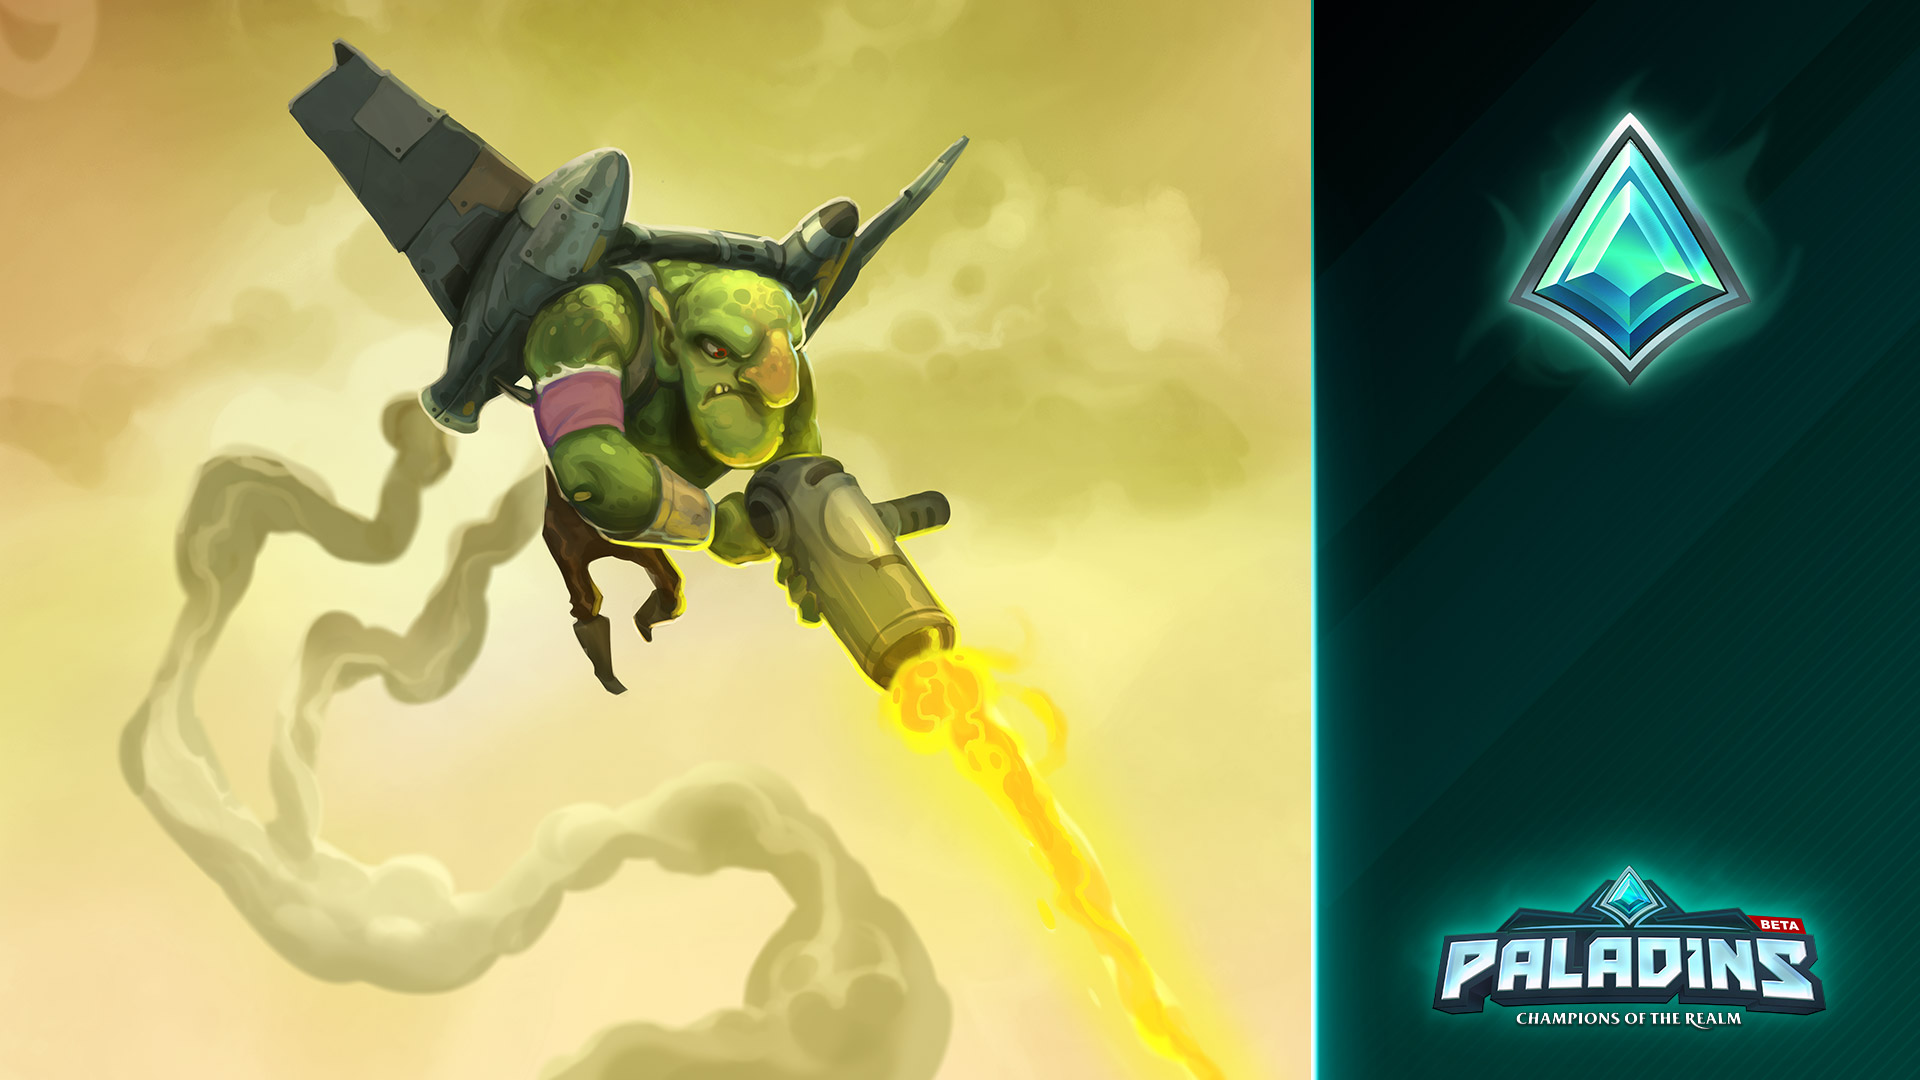 Steam Card Exchange Showcase Paladins Reassembled Number 5 Is Alive Again Cru Jones Society Of 8artwork From Above